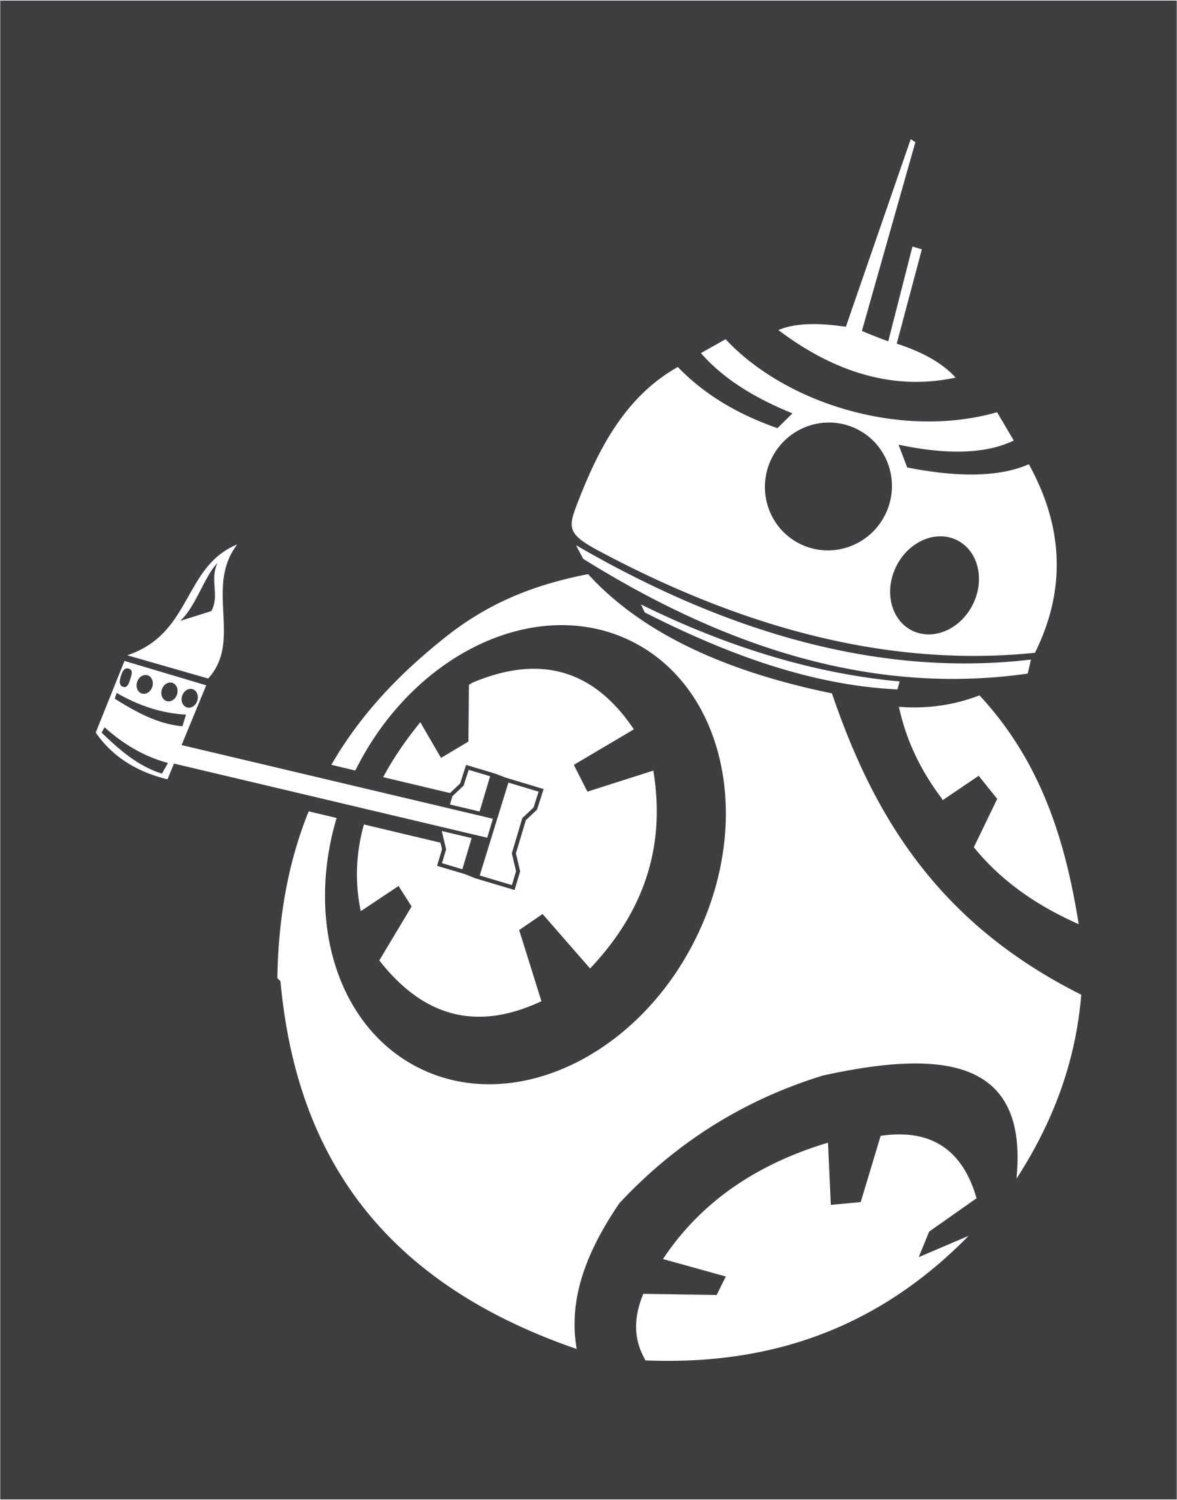 Thumbs up bb 8 by postimpactdecals on etsy